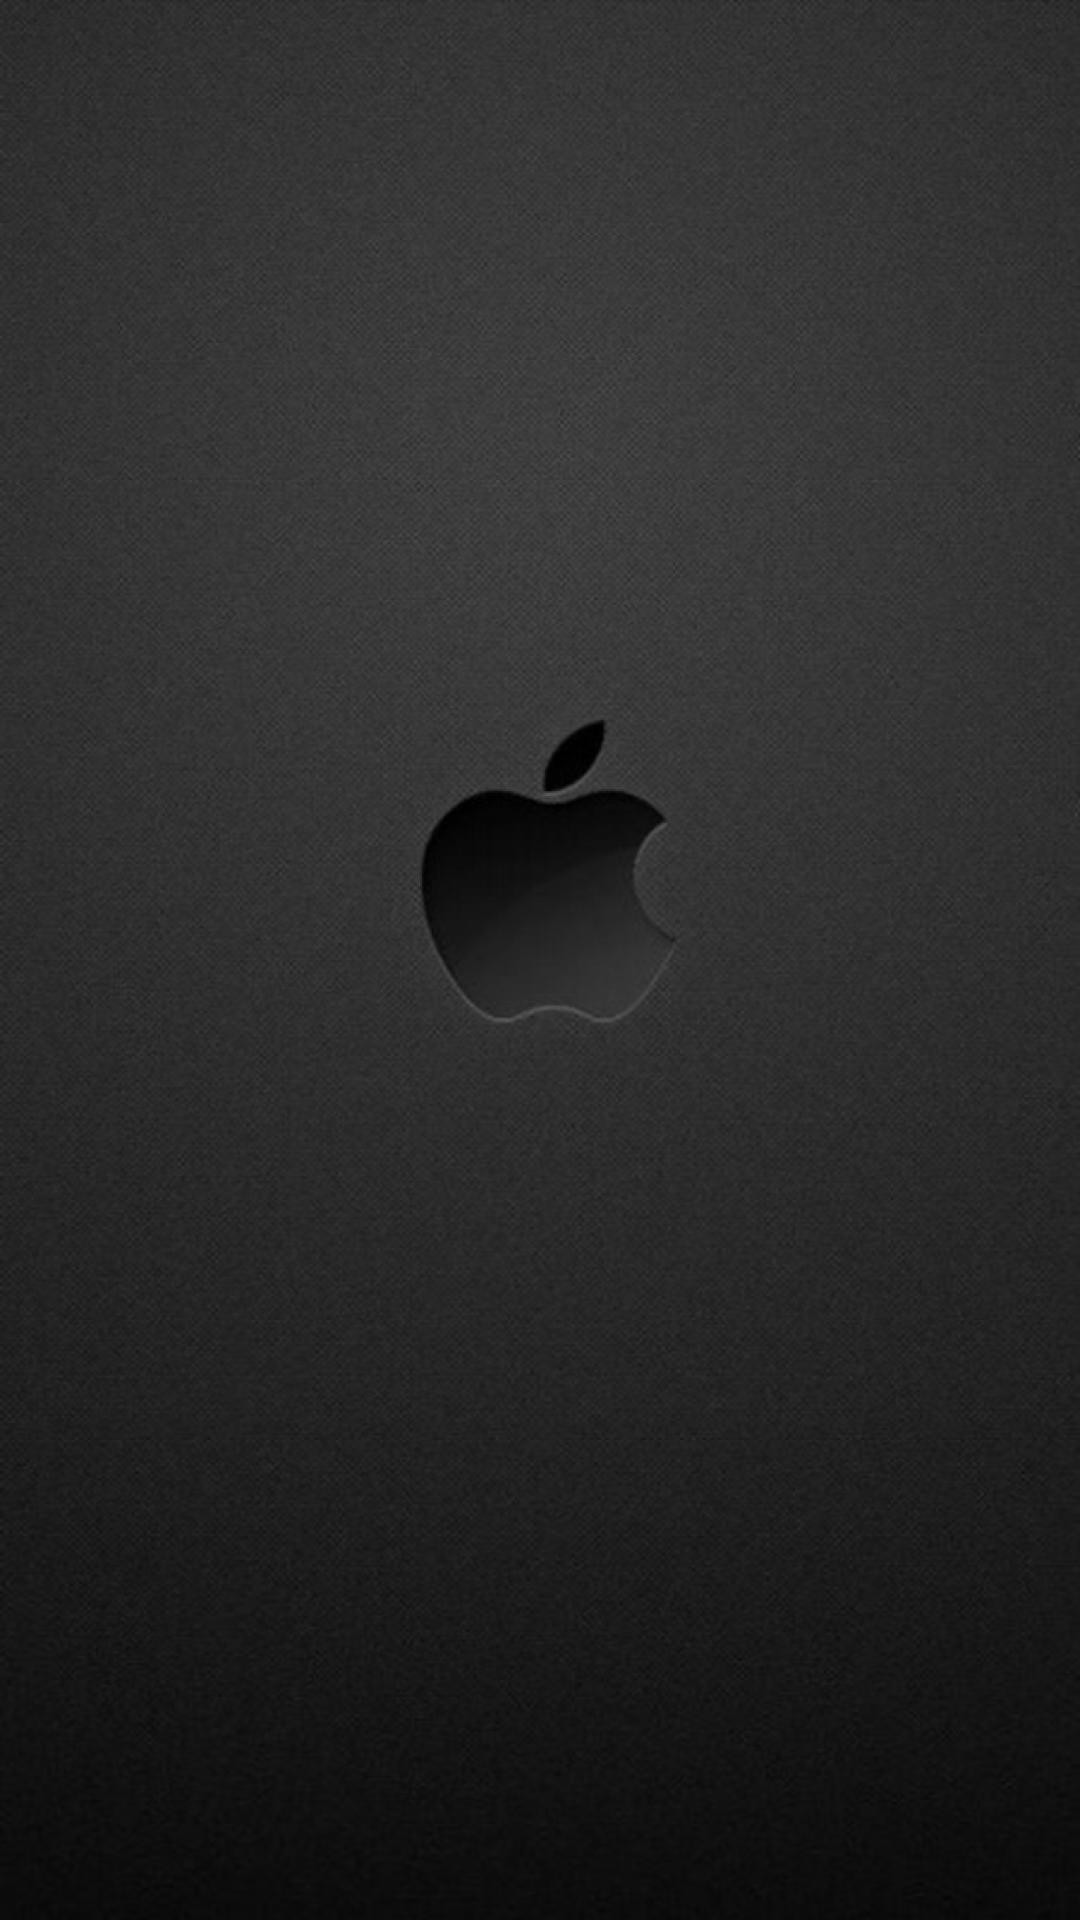 Good Wallpapers For Iphone Six 84 Images